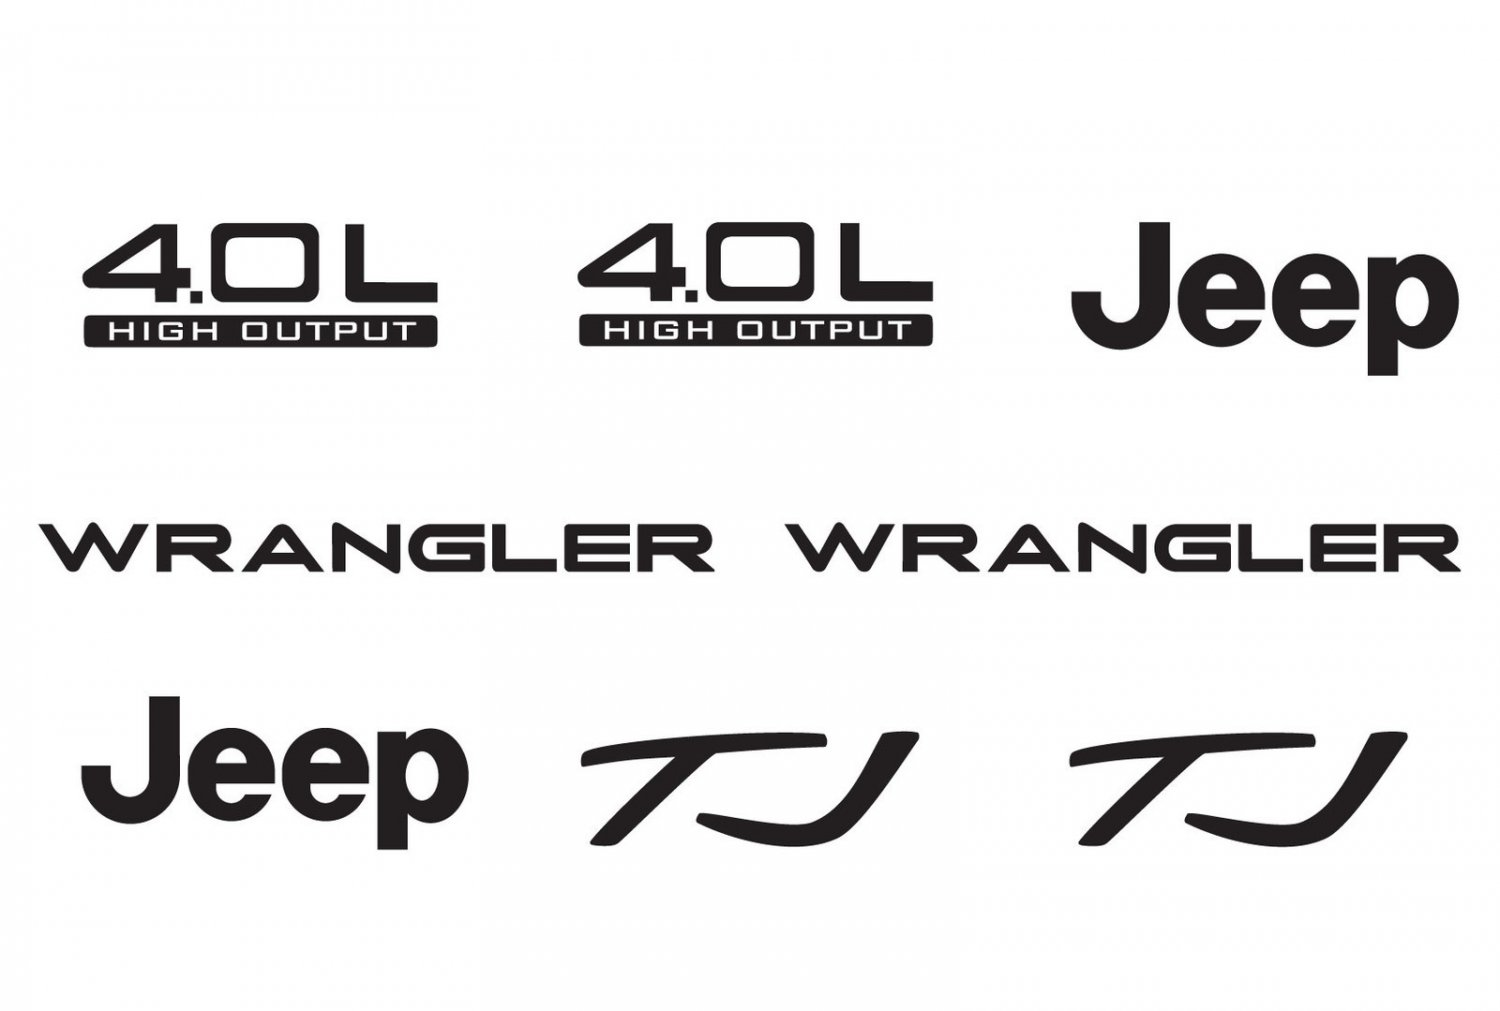 Jeep Wrangler Tj 4 0l 4 0 L Refresh Vinyl Decal Set